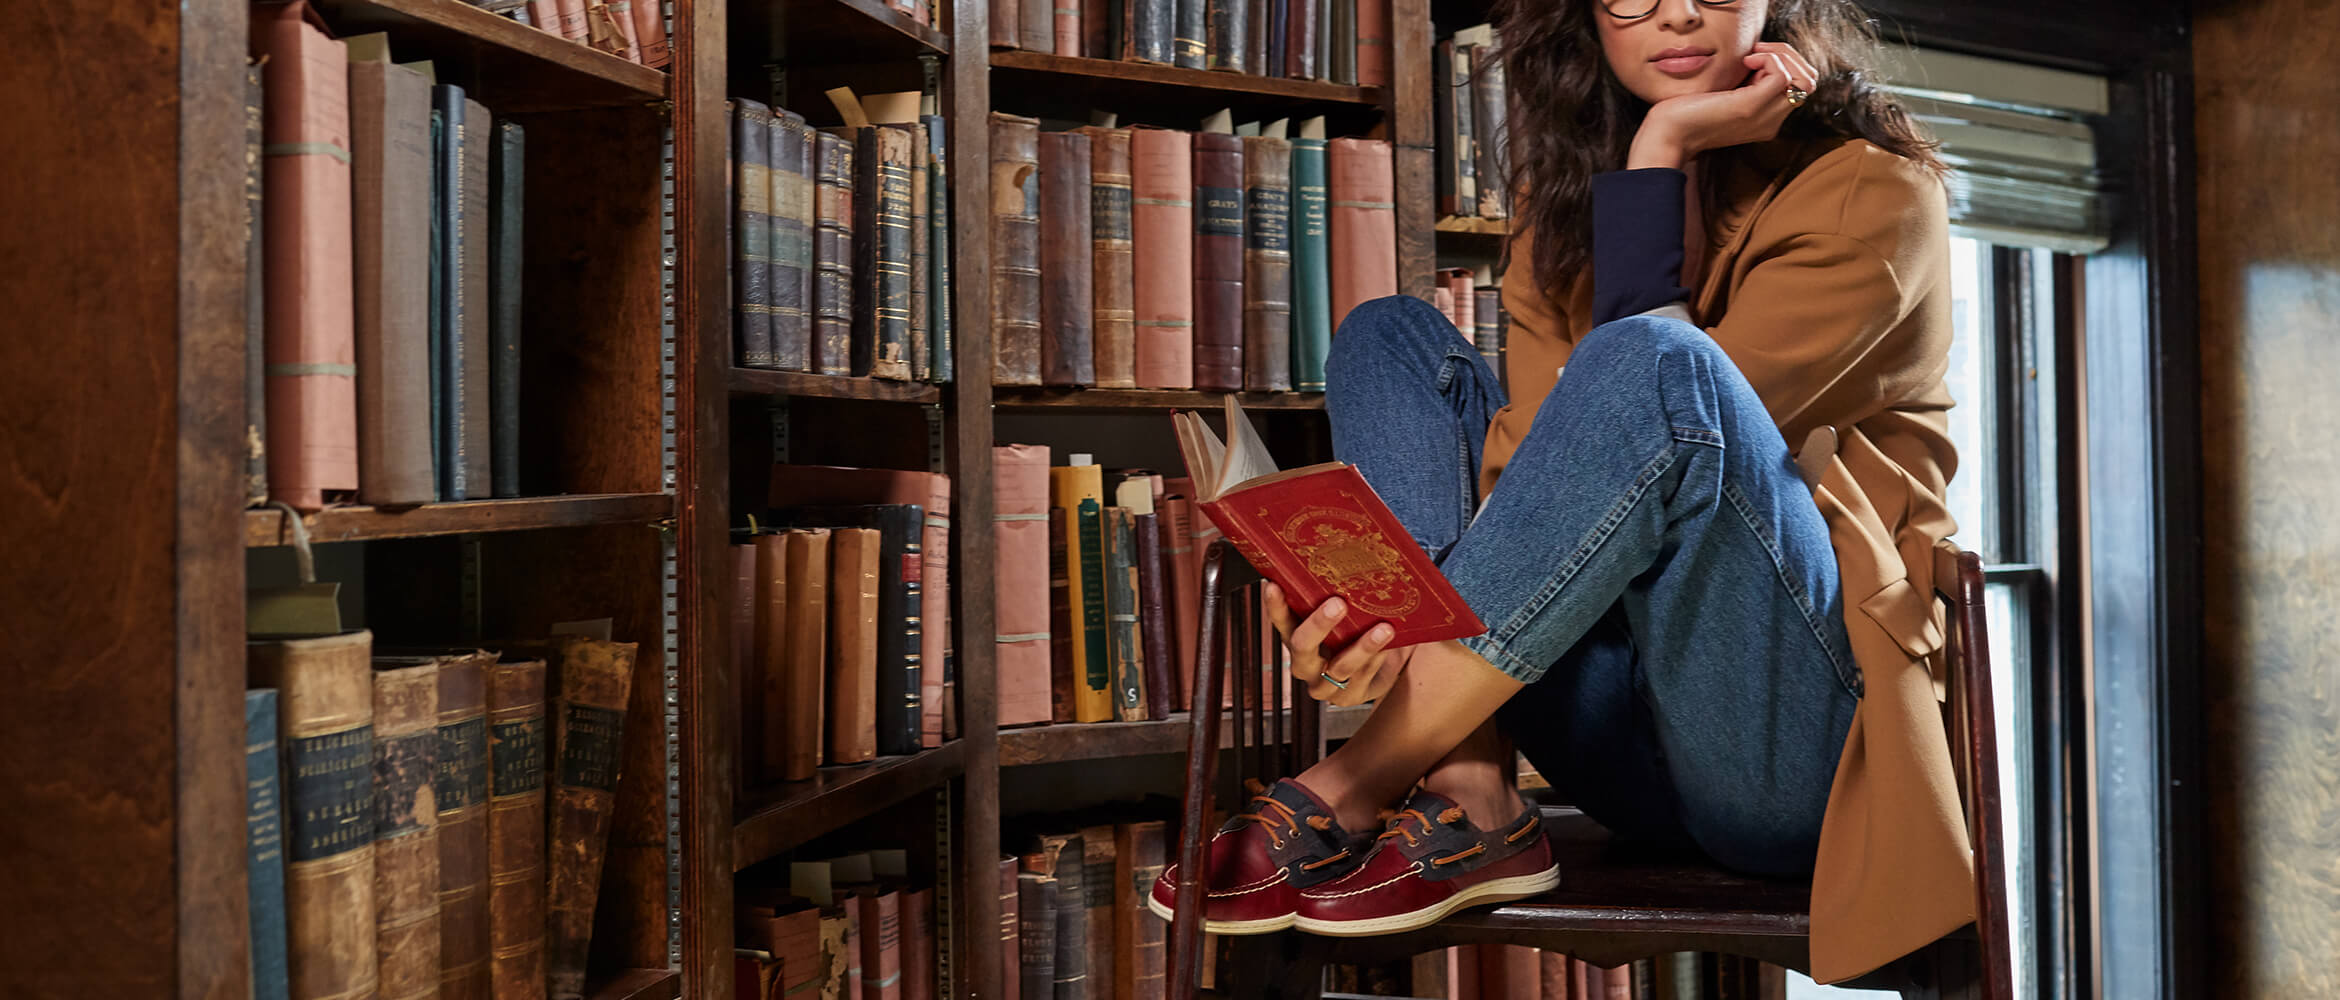 Girl sits on a stool in a library; feet pulled up onto the seat. She holds an open book, but her mind is elsewhere. She has nice shoes.